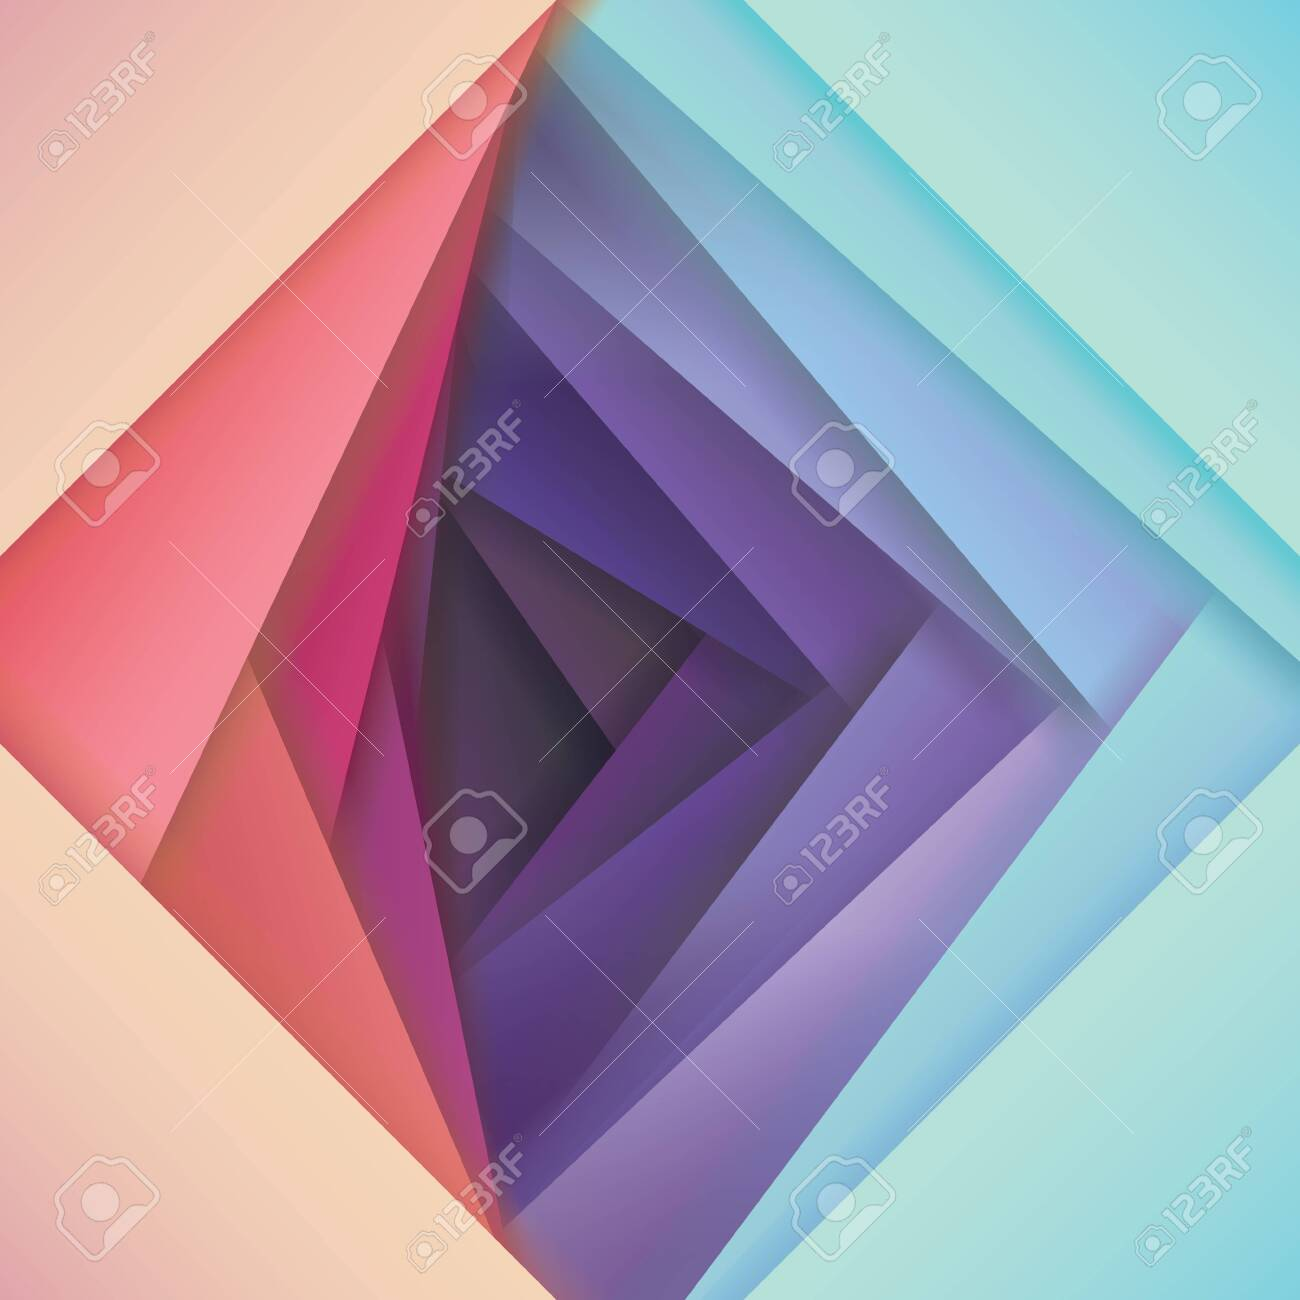 abstract papercut vector background, pink to violet color map, overlapping shapes in several bright gradient color combinations, Colorful material design style wallpaper, vector illustration - 149485917